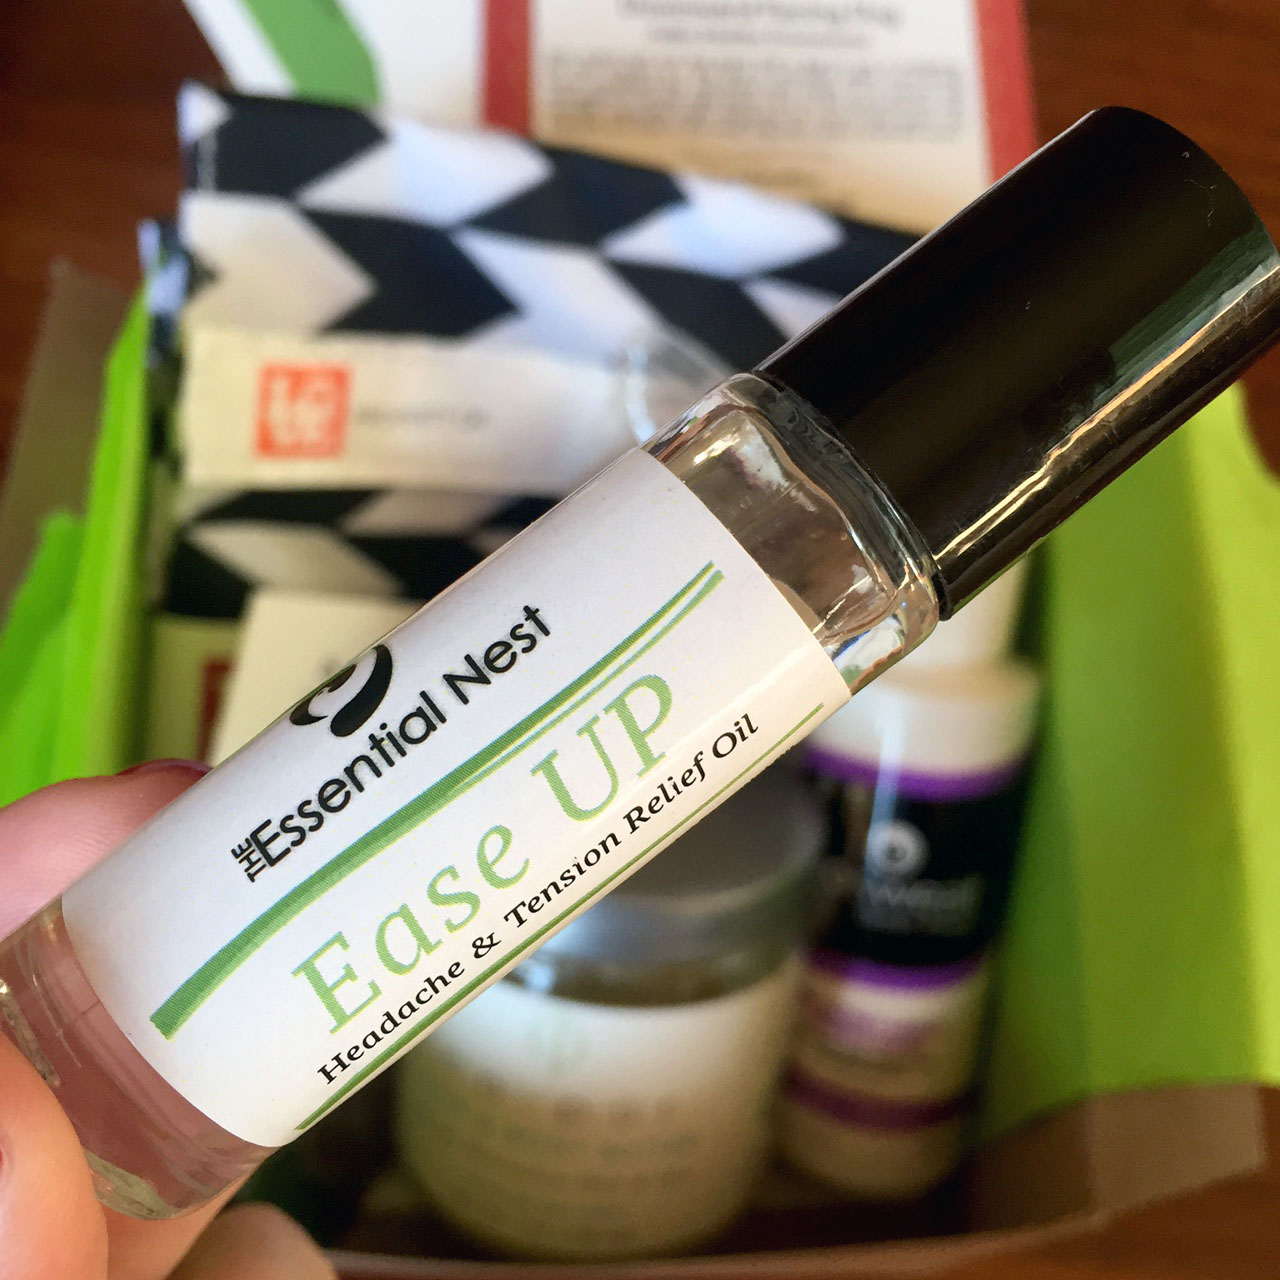 The Essential Nest's Headache Relief Rollerball